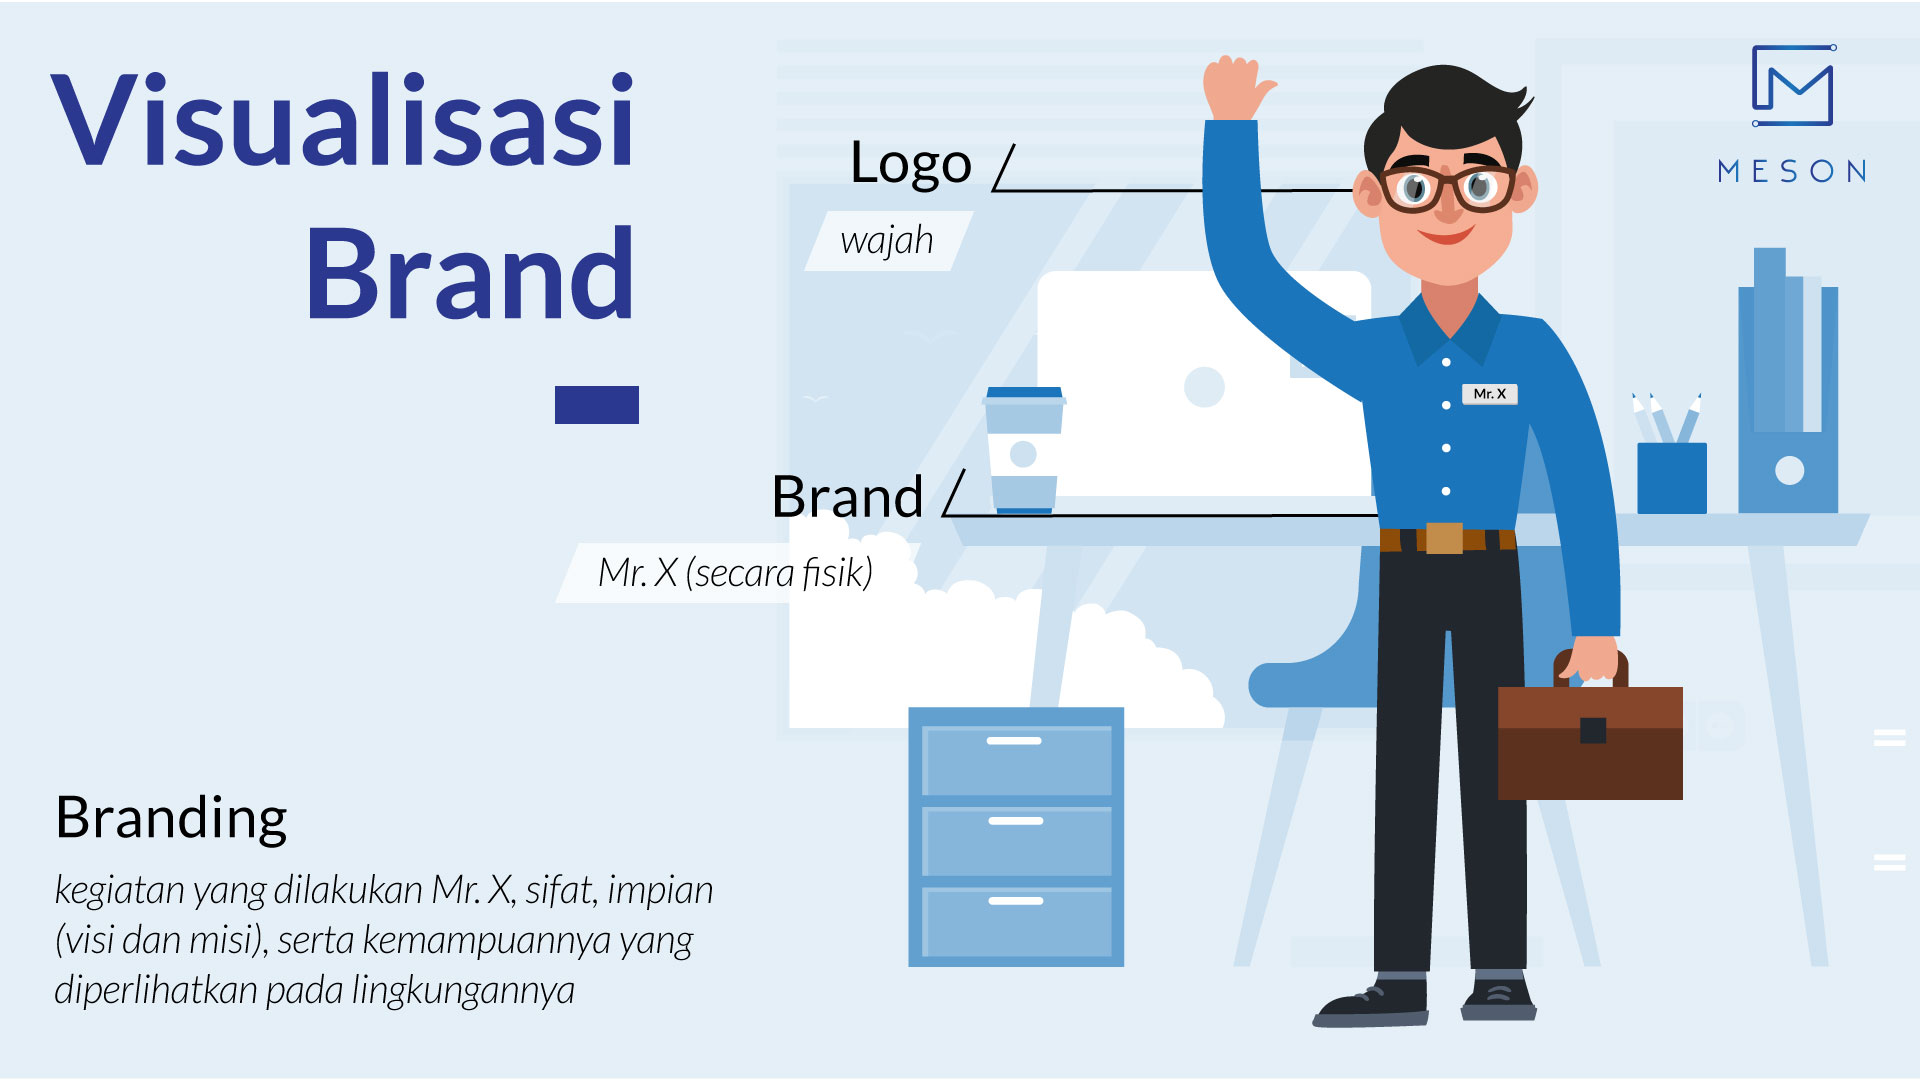 branding-visualisasi-article-meson-digital-marketing-jakarta